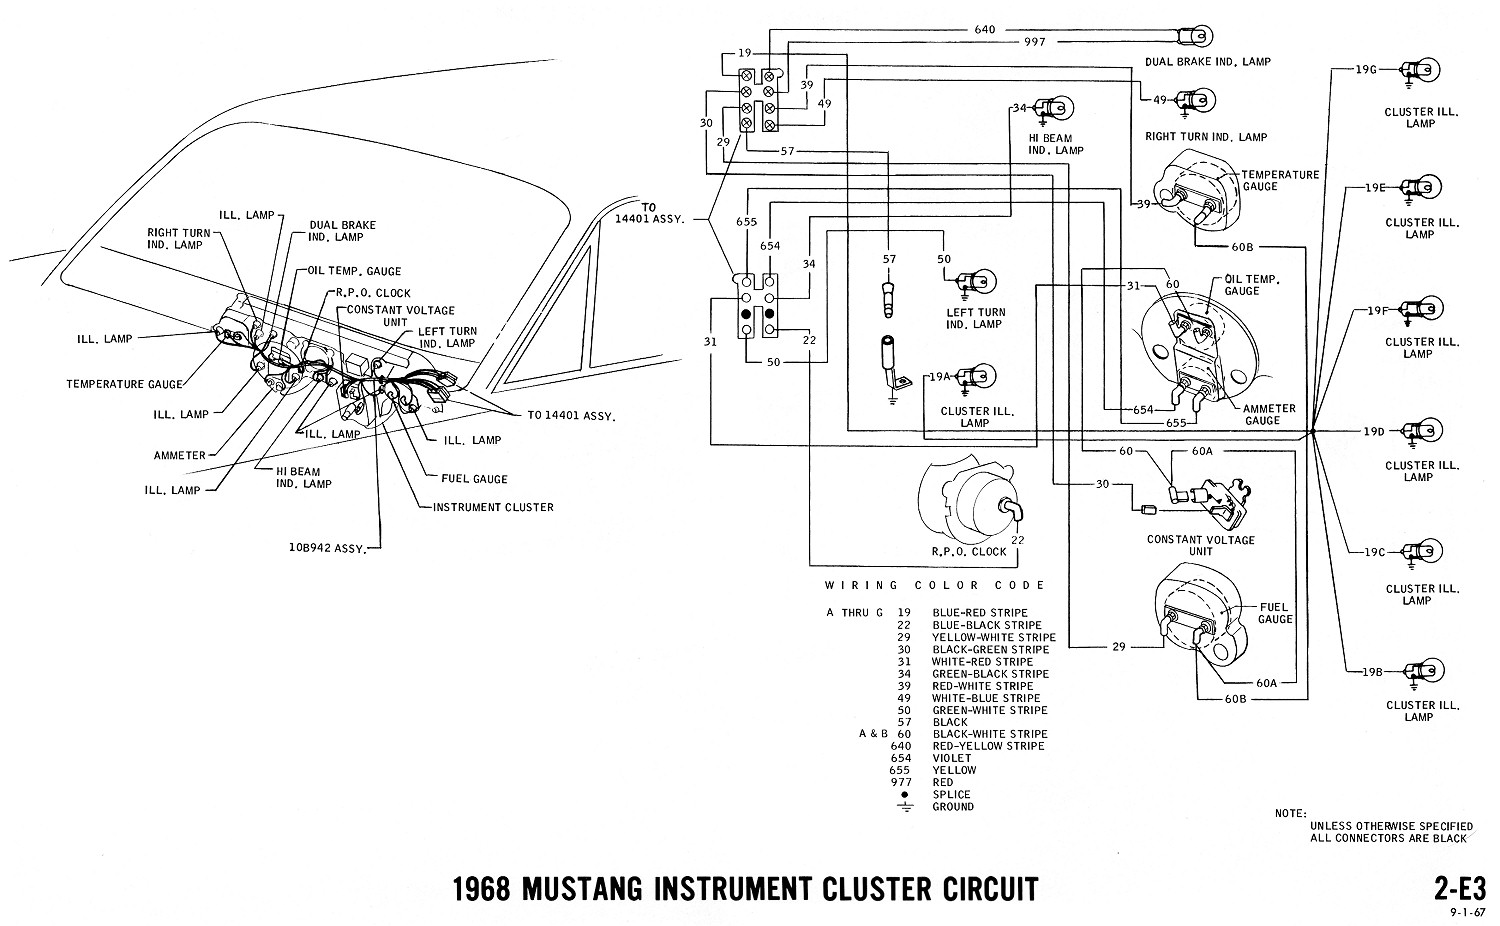 1968 Camaro Gauge Cluster Wiring Diagram House 1970 1981 Dash Instrument Circuit Board For Models 70 Mustang Diagrams Rh Boltsoft Net Online